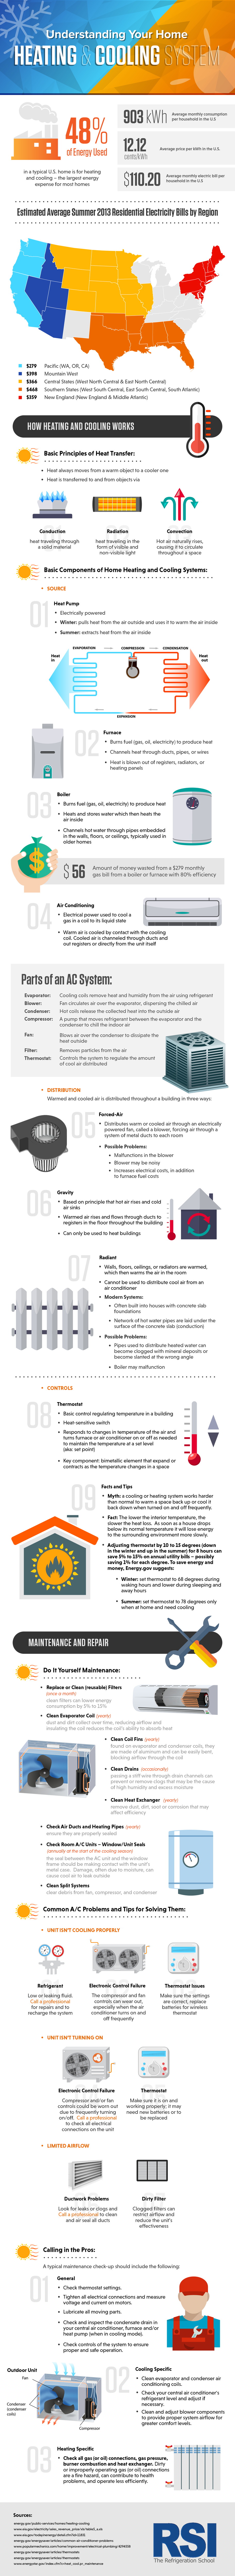 Why Your Home HVAC System Deserves Careful Maintenance - Infographic